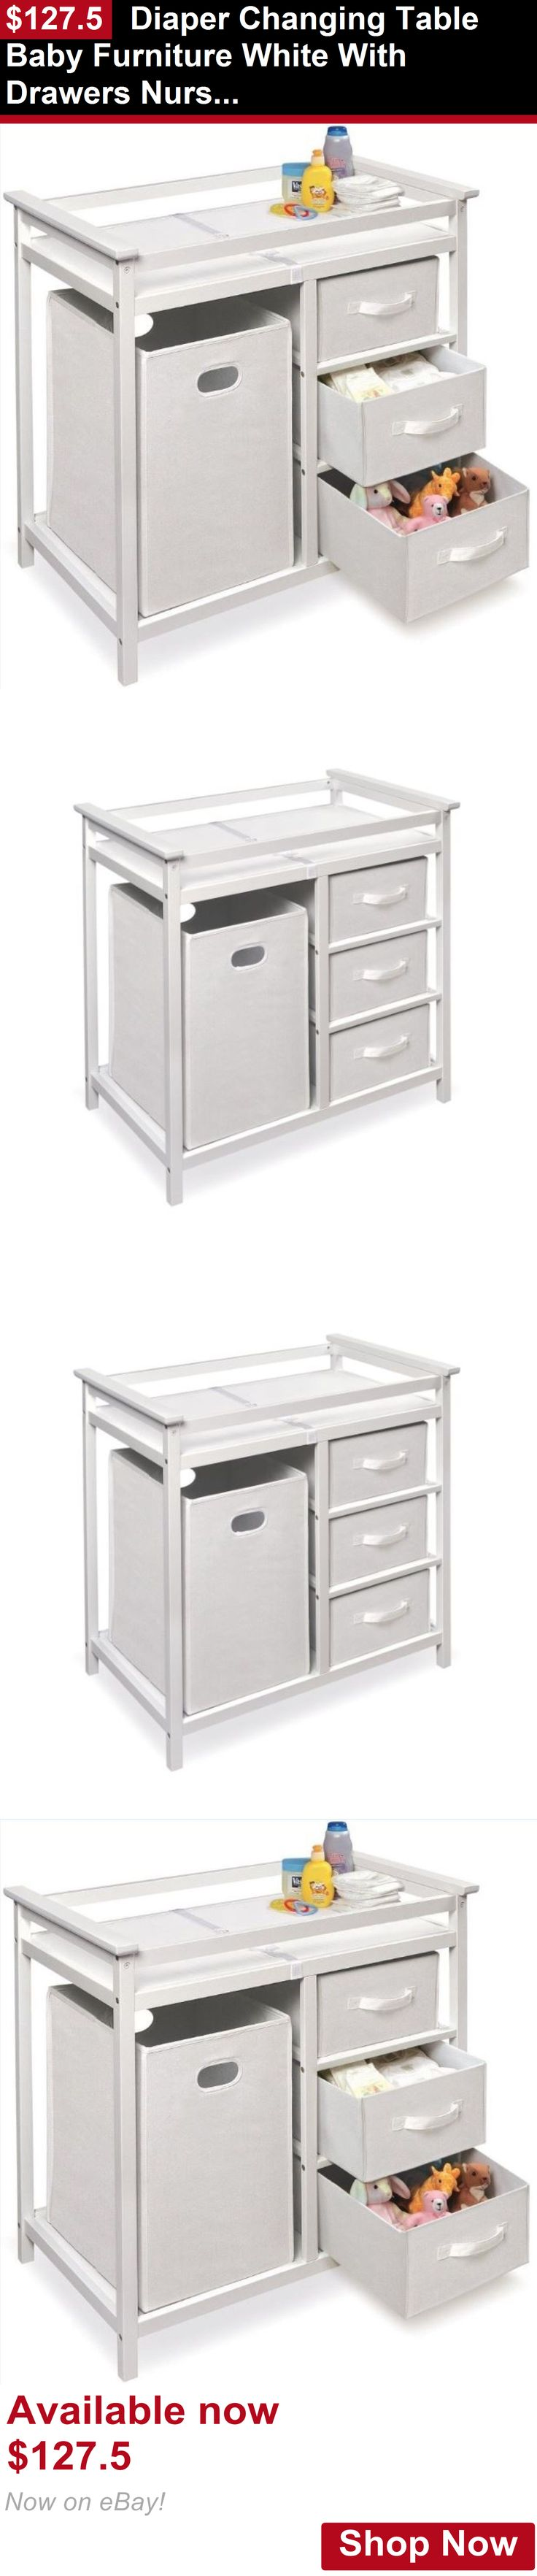 Changing Tables: Diaper Changing Table Baby Furniture White With Drawers Nursery Storage Station BUY IT NOW ONLY: $127.5